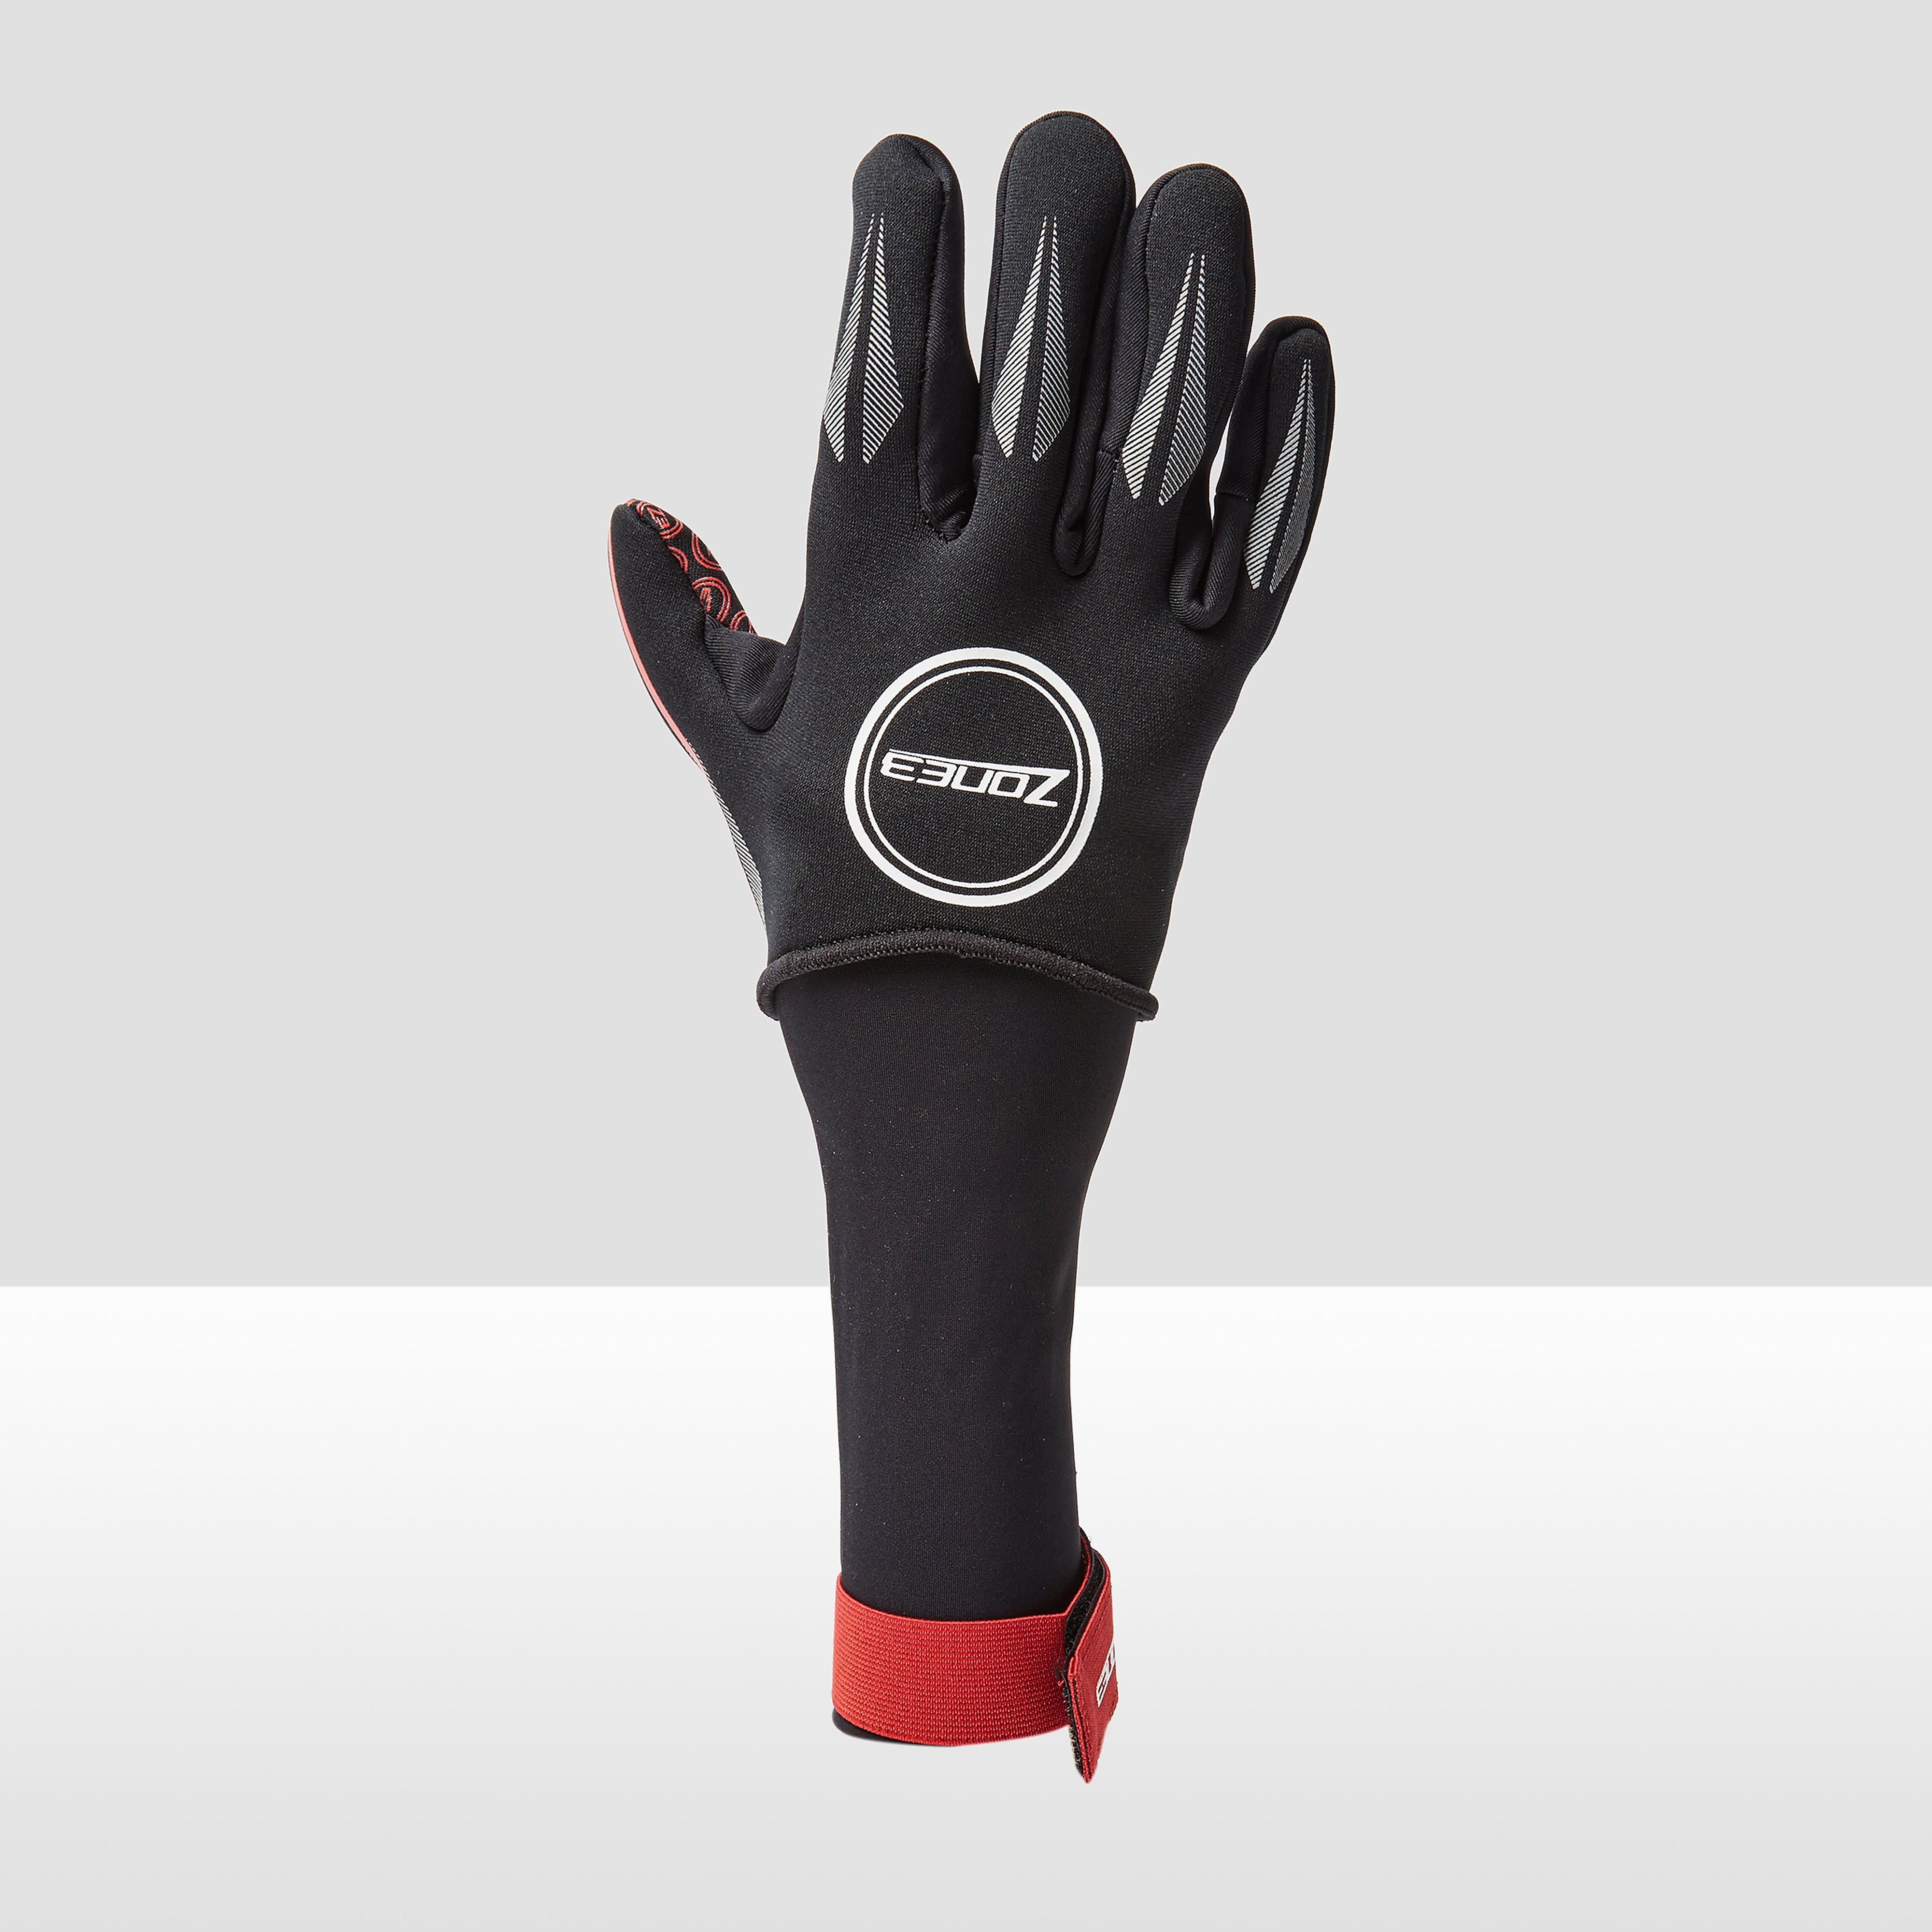 Zone 3 Neoprene Swimming Gloves